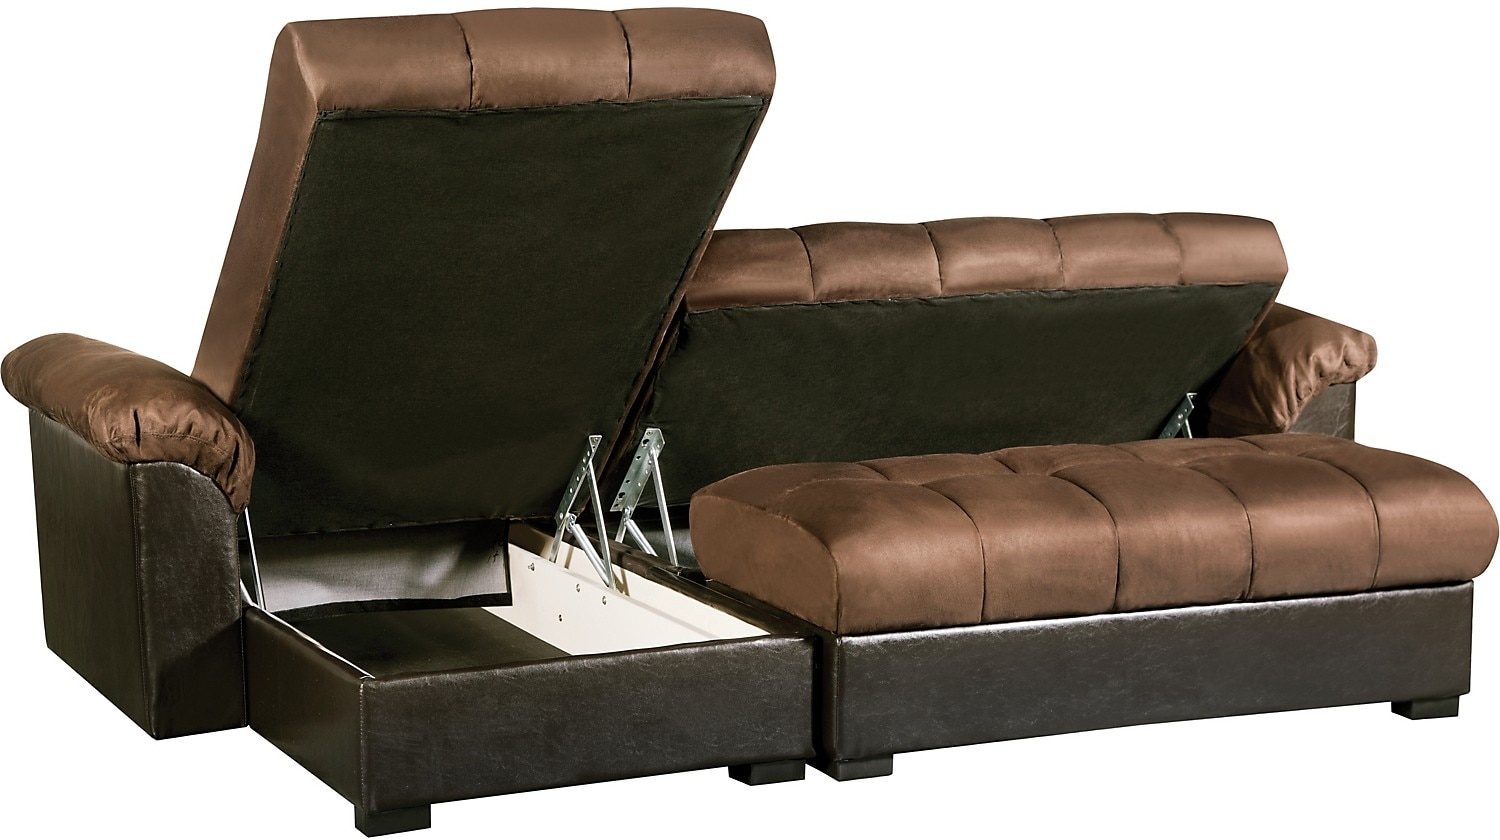 Billie 2 piece storage futon sectional with chaise for 2 piece sectional sofa with chaise